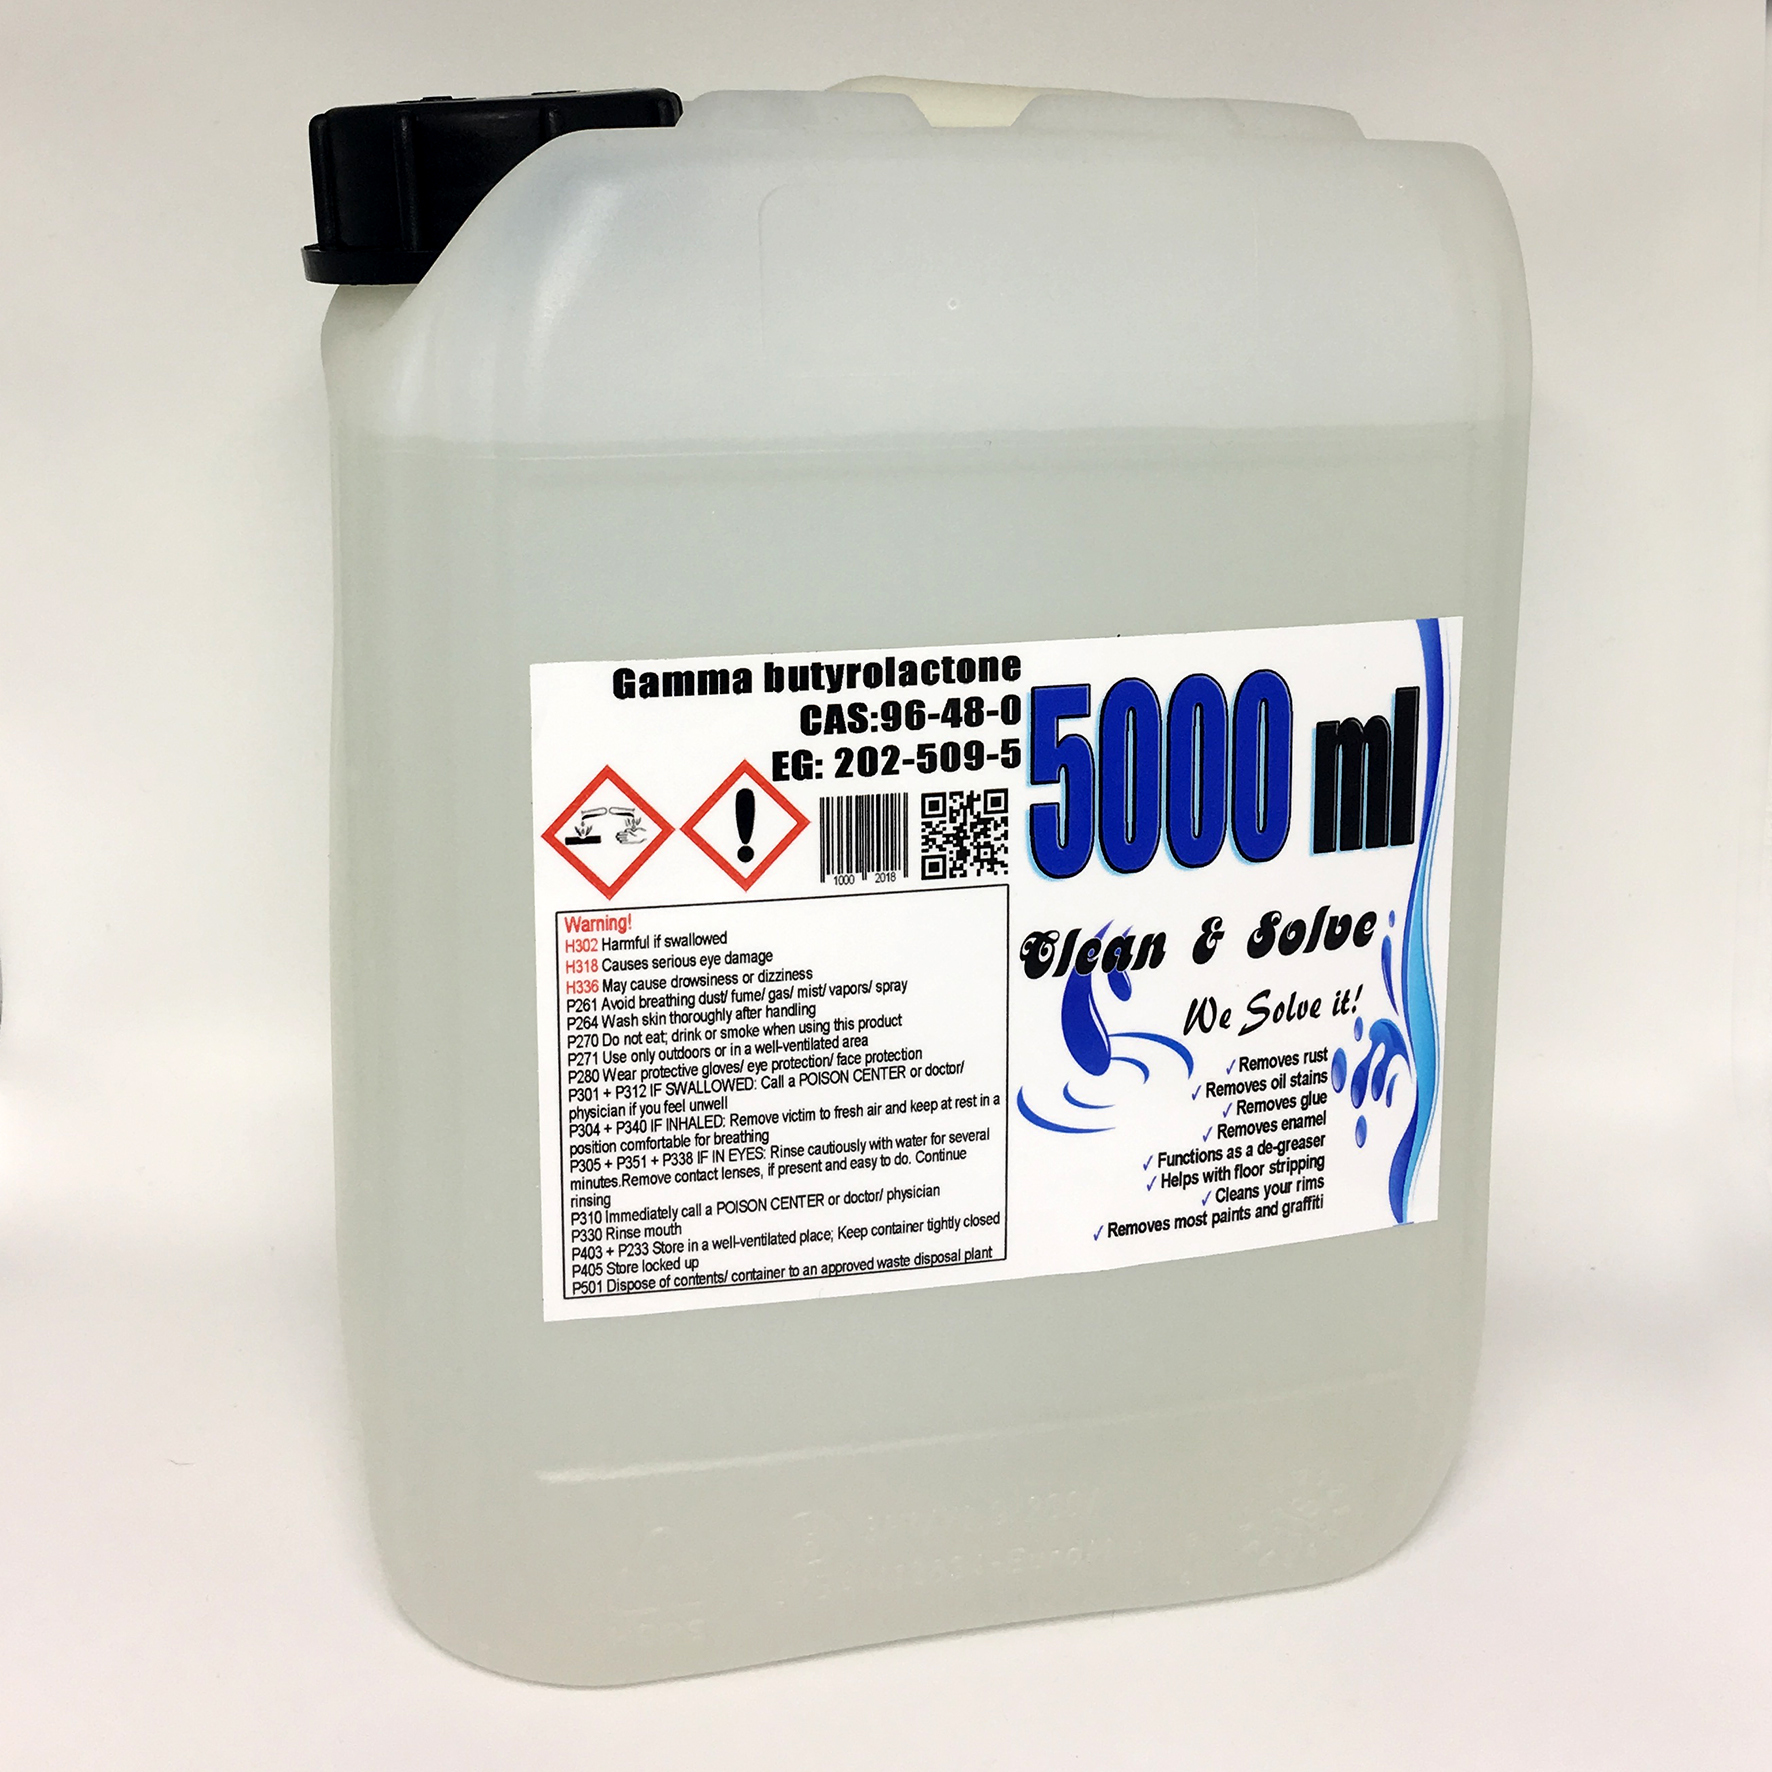 Industrial Cleaner 5.000 ml Technical Grade Canister 00029 HS Code 29322020